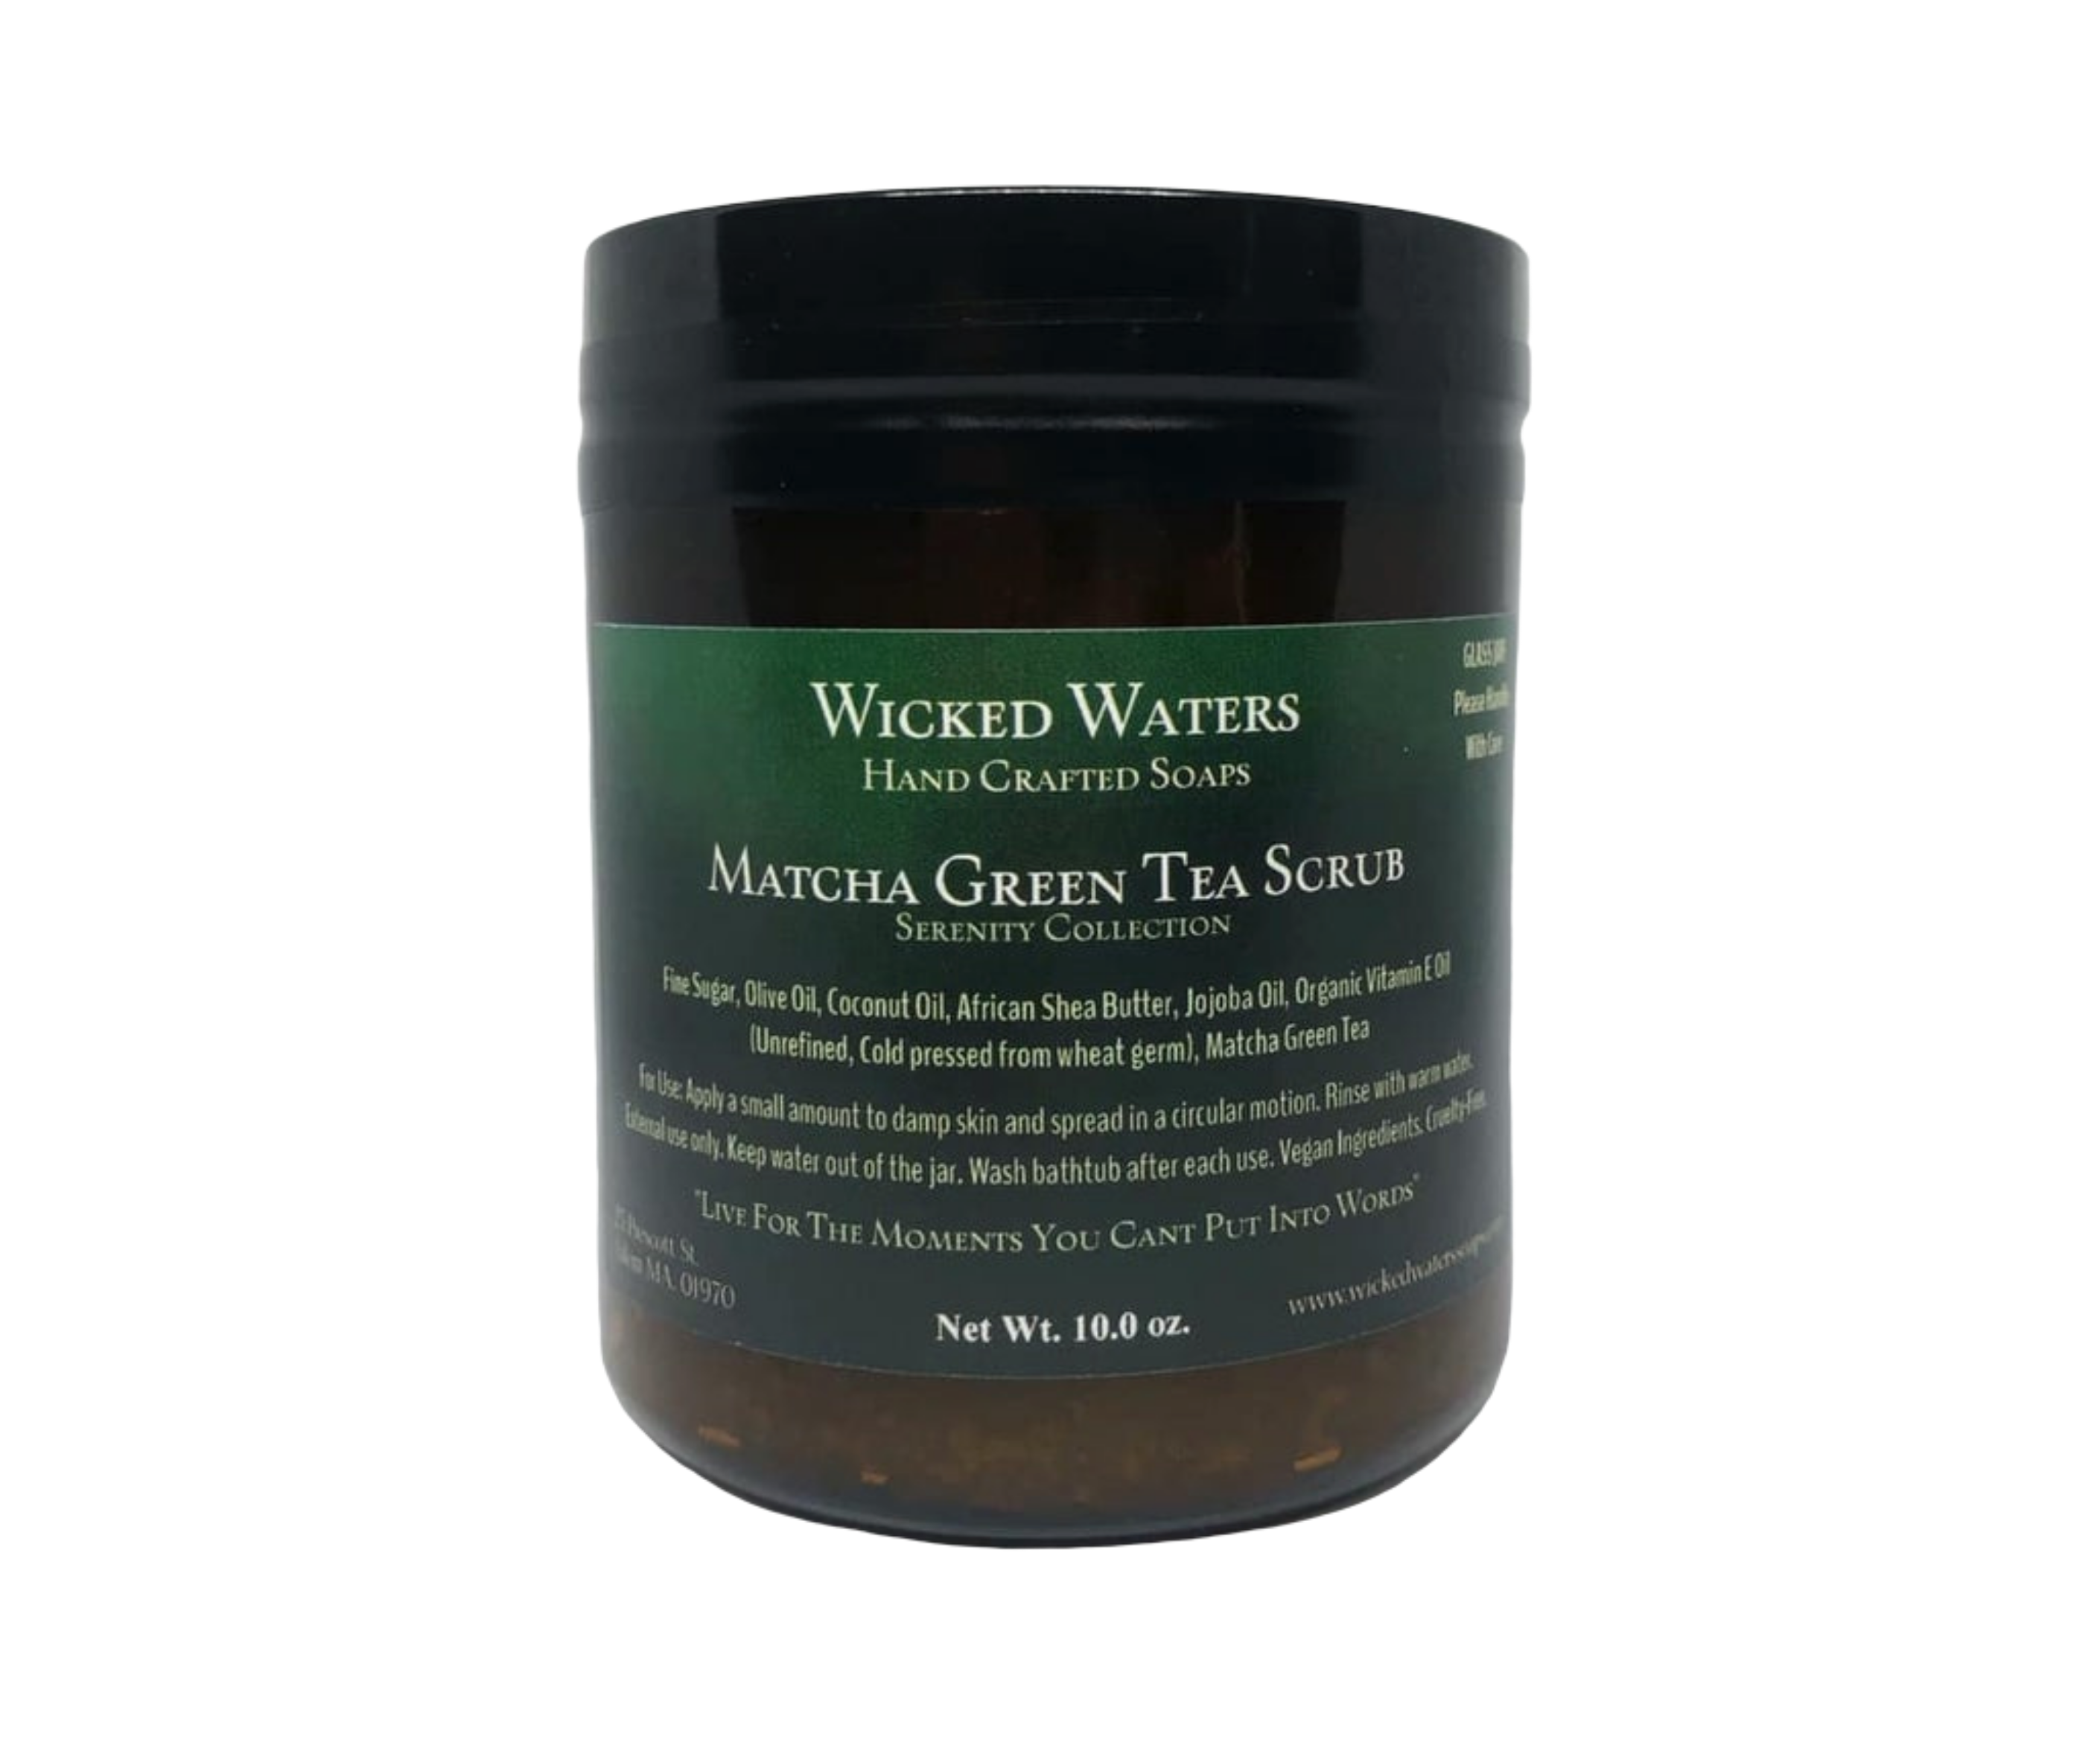 Matcha Green Tea Scrub 2820 X 2364